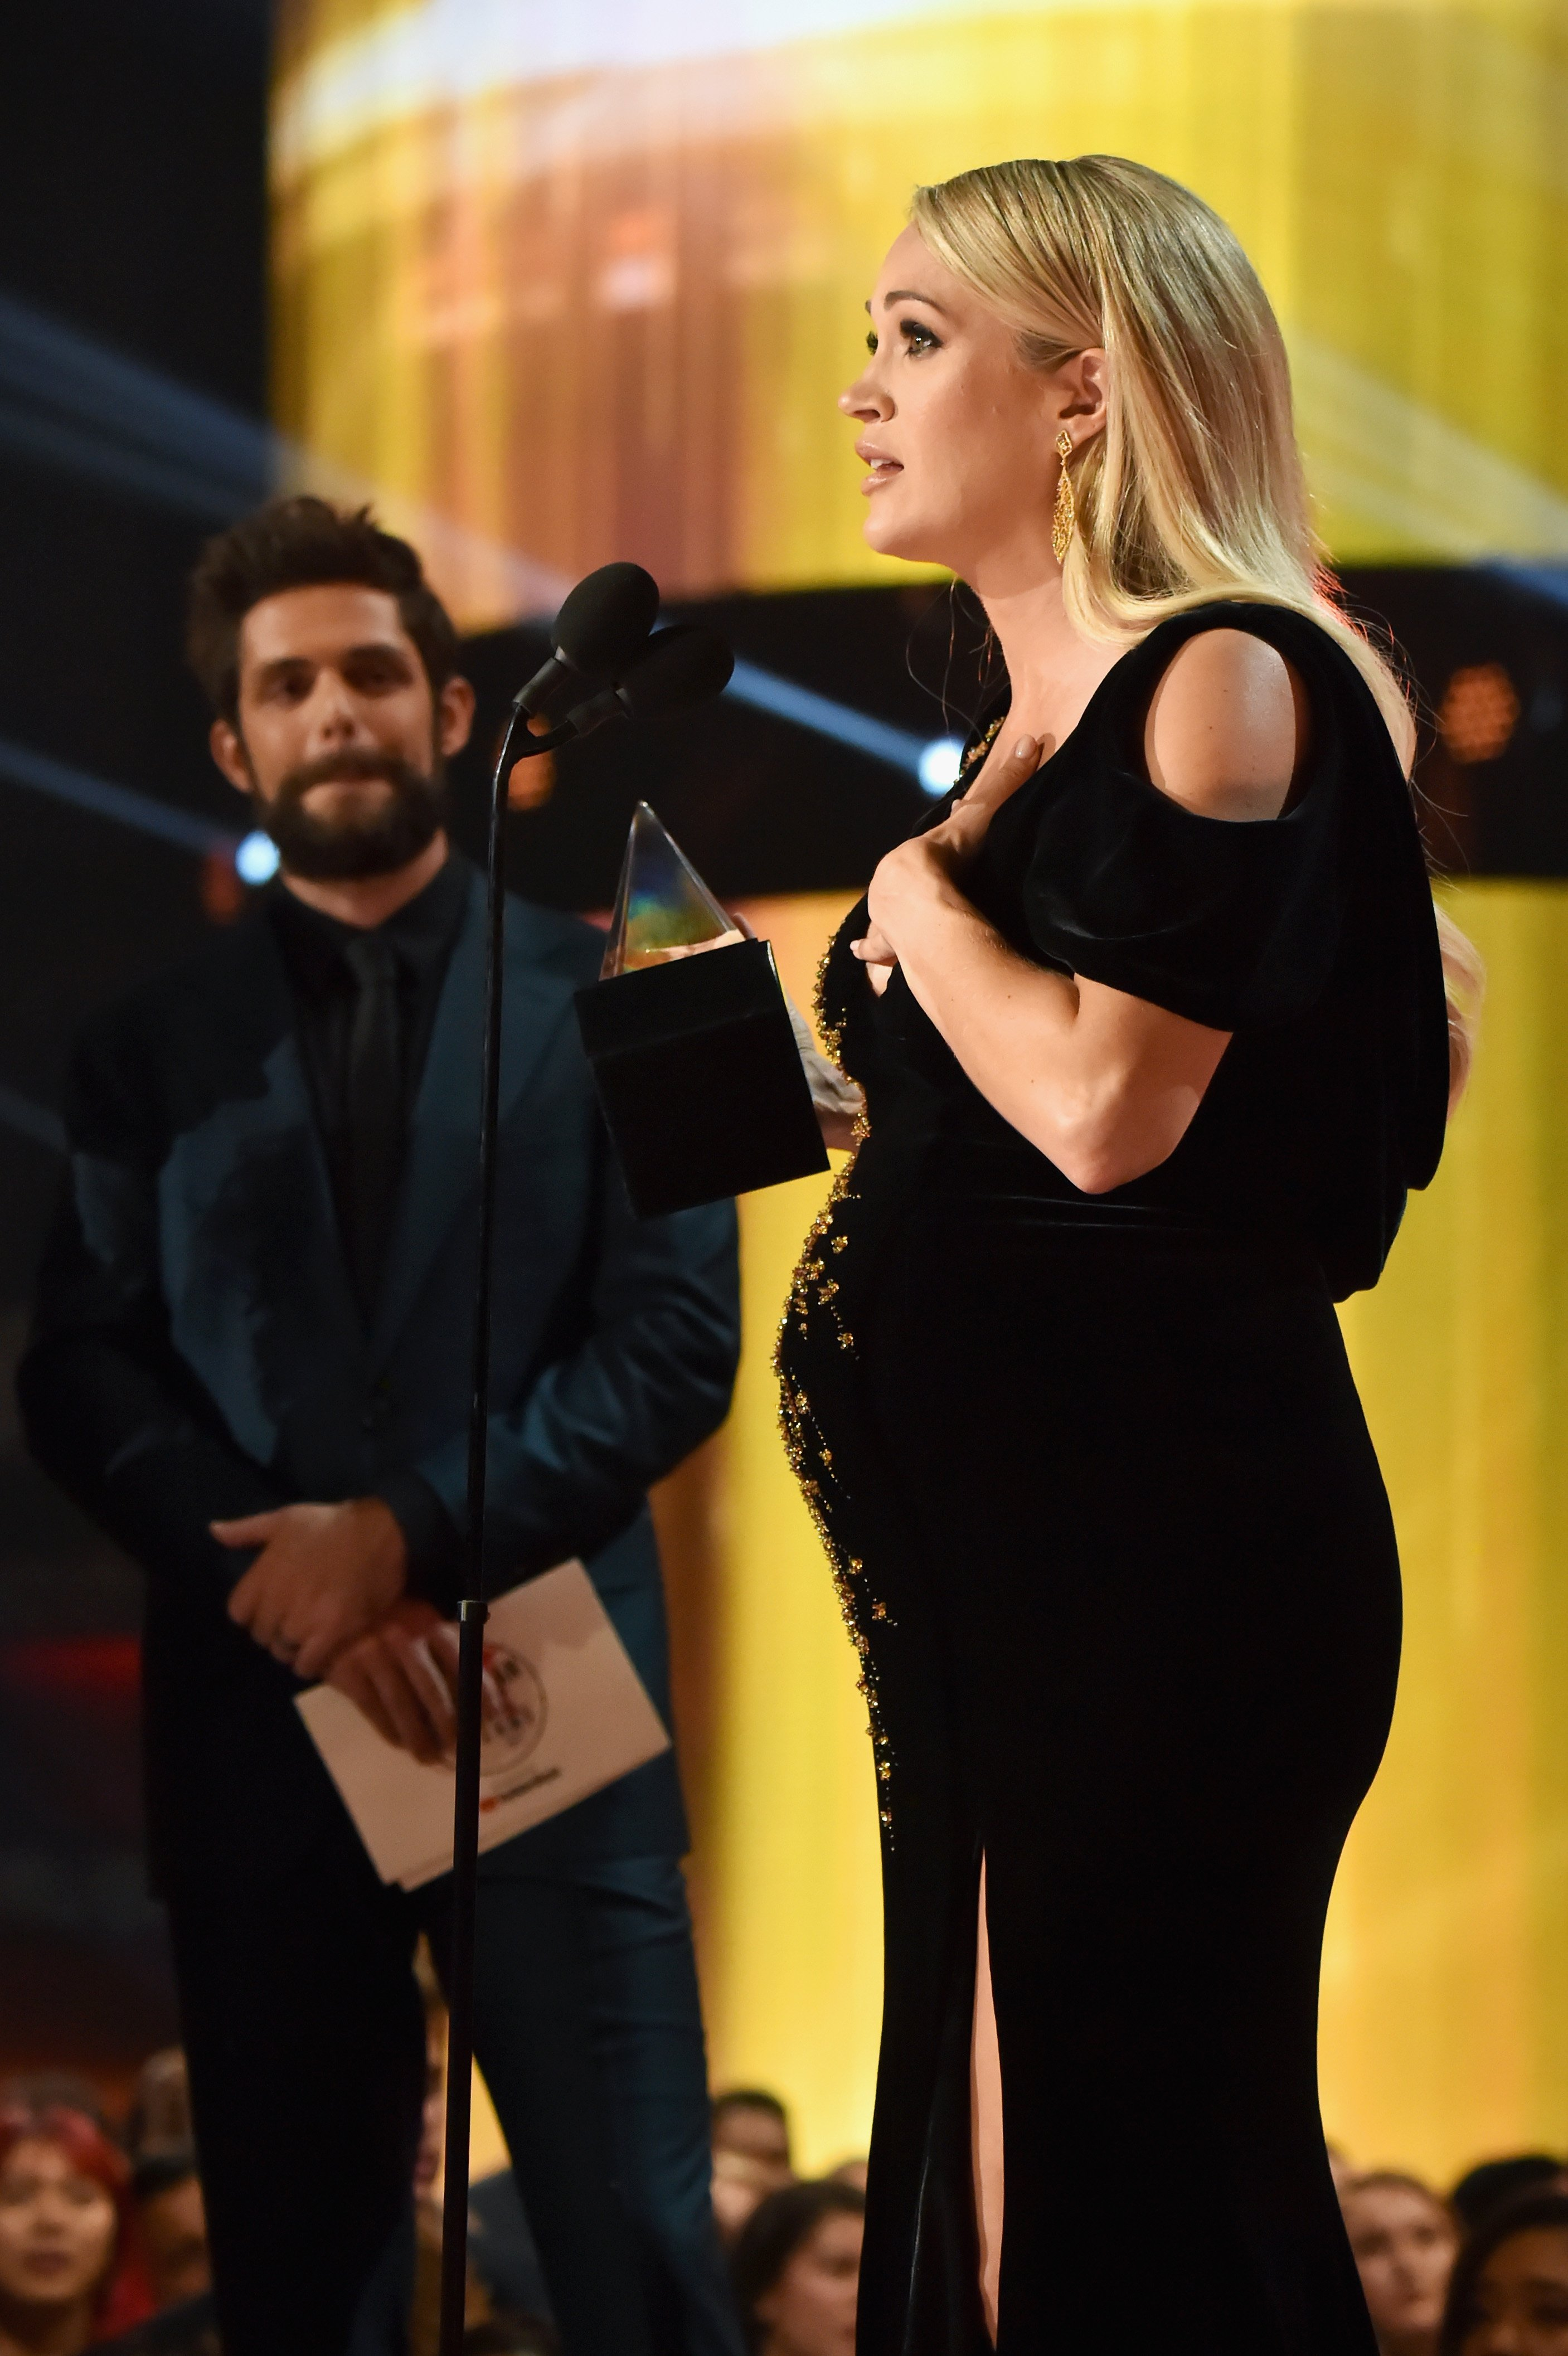 Carrie Underwood at the 2018 American Music Awards | Photo: Getty Images